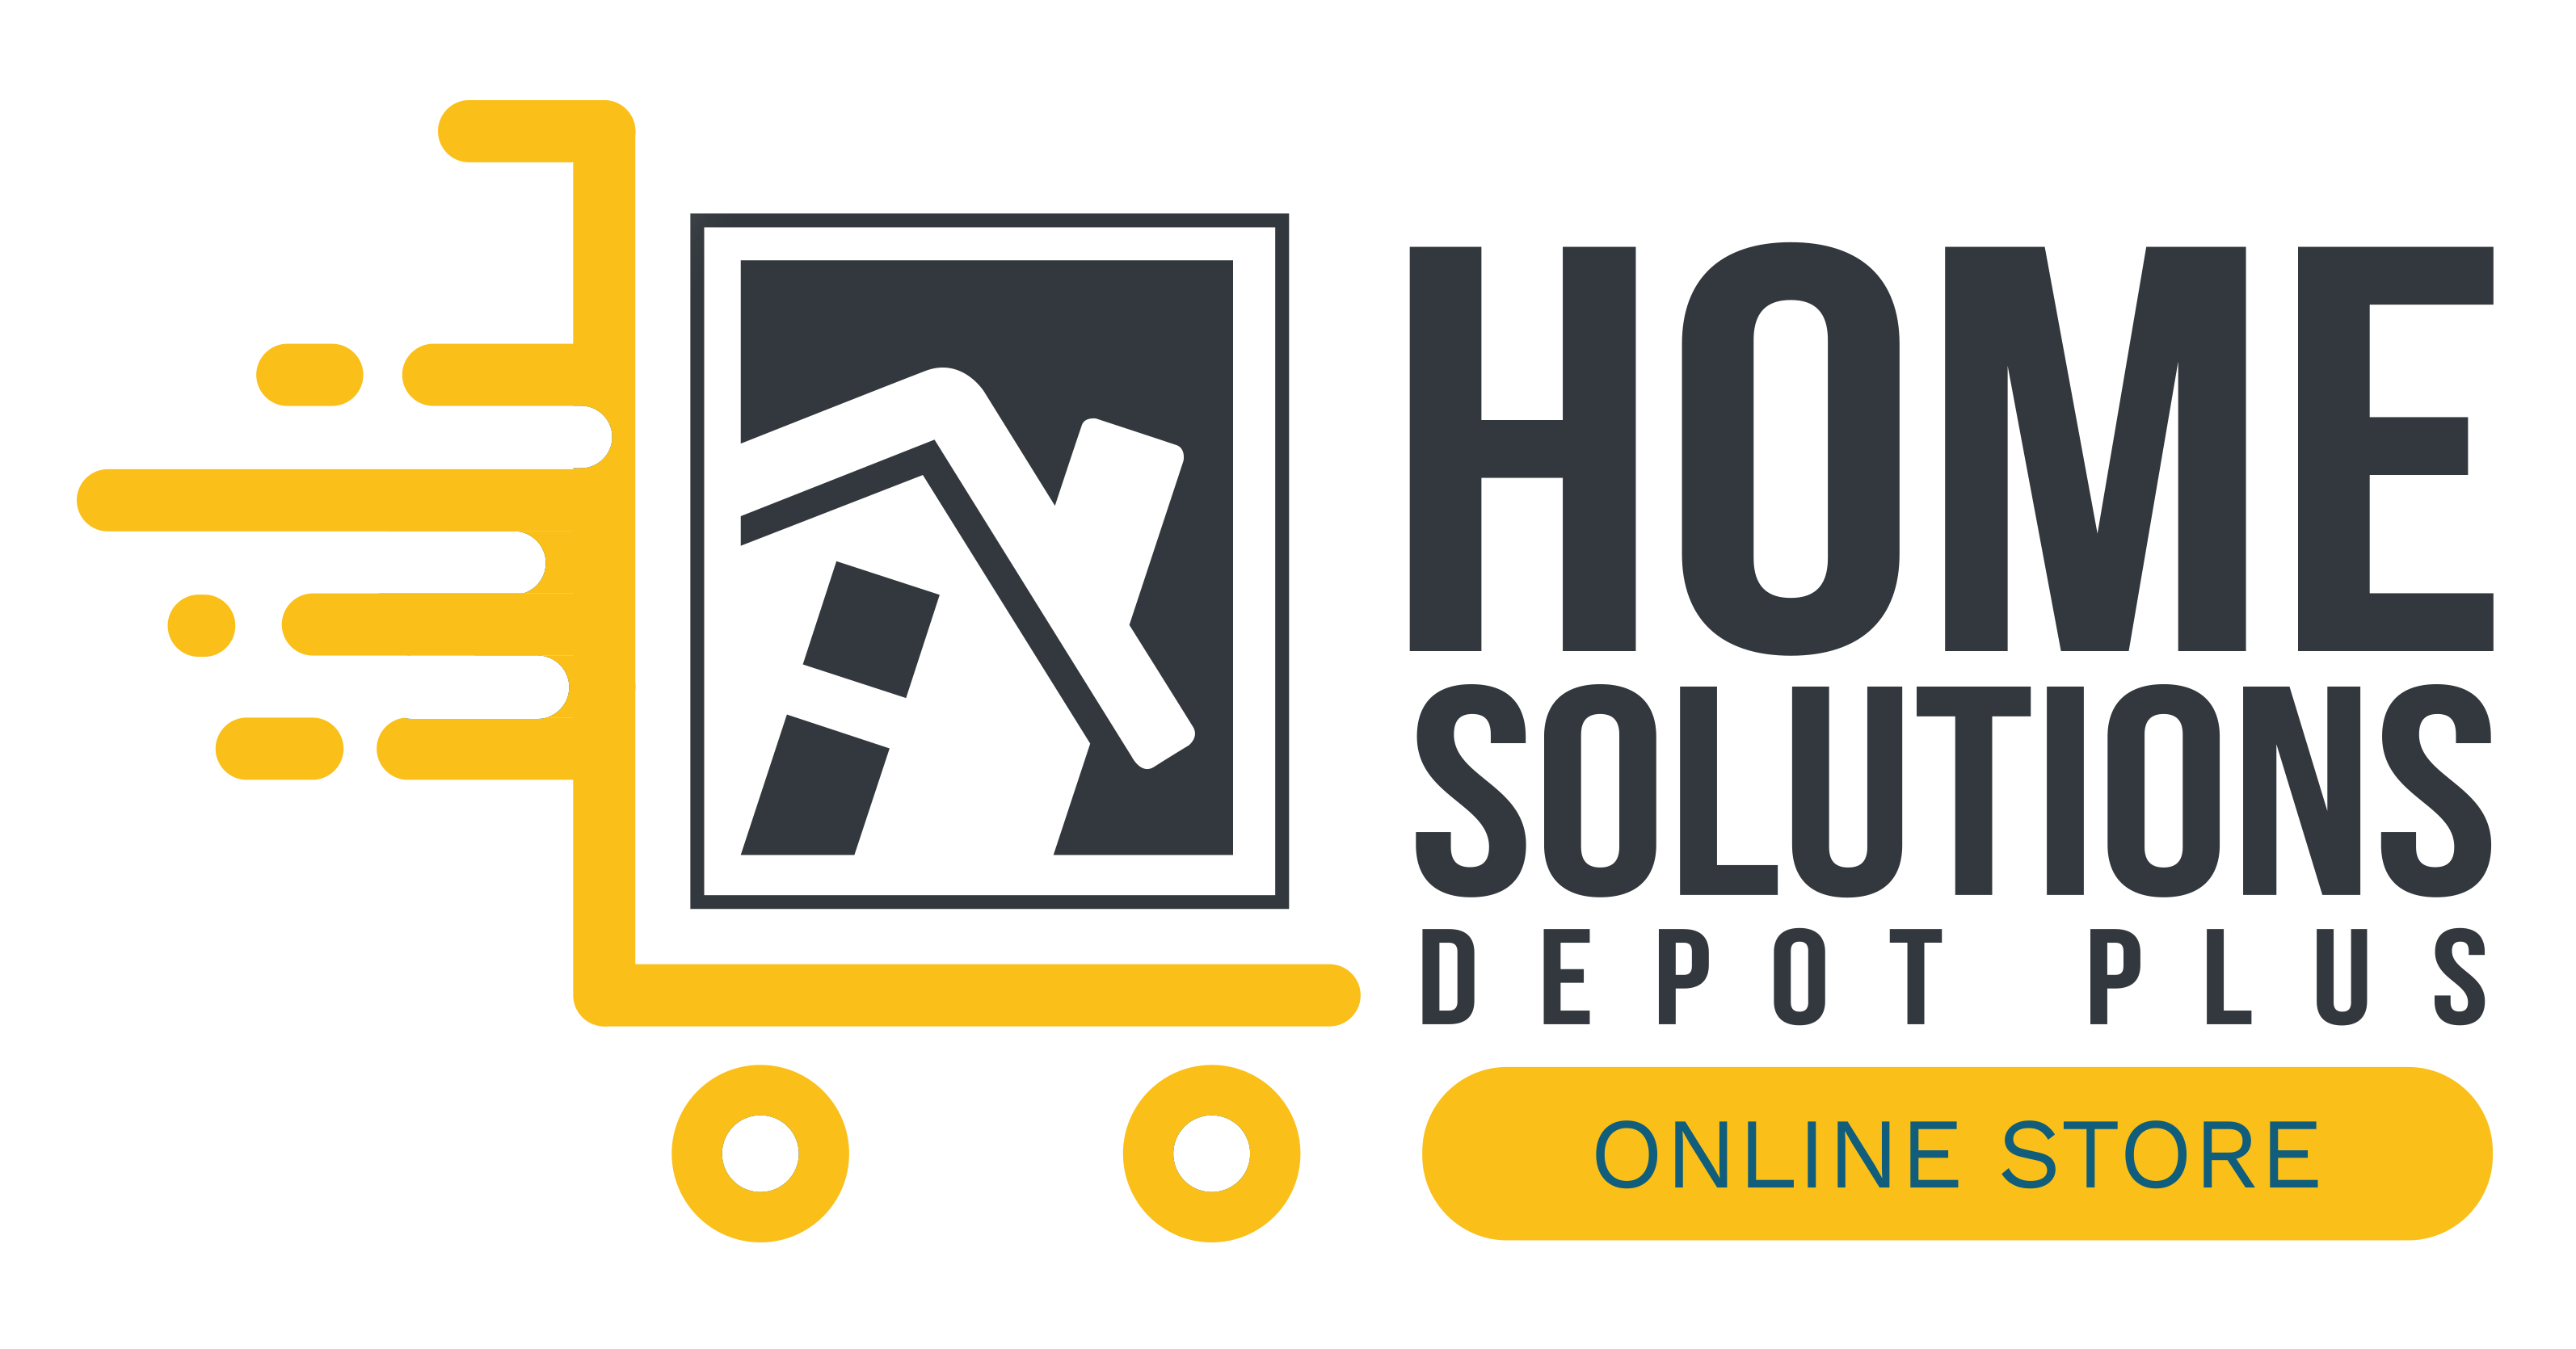 Home Solutions Depot Plus Online Store